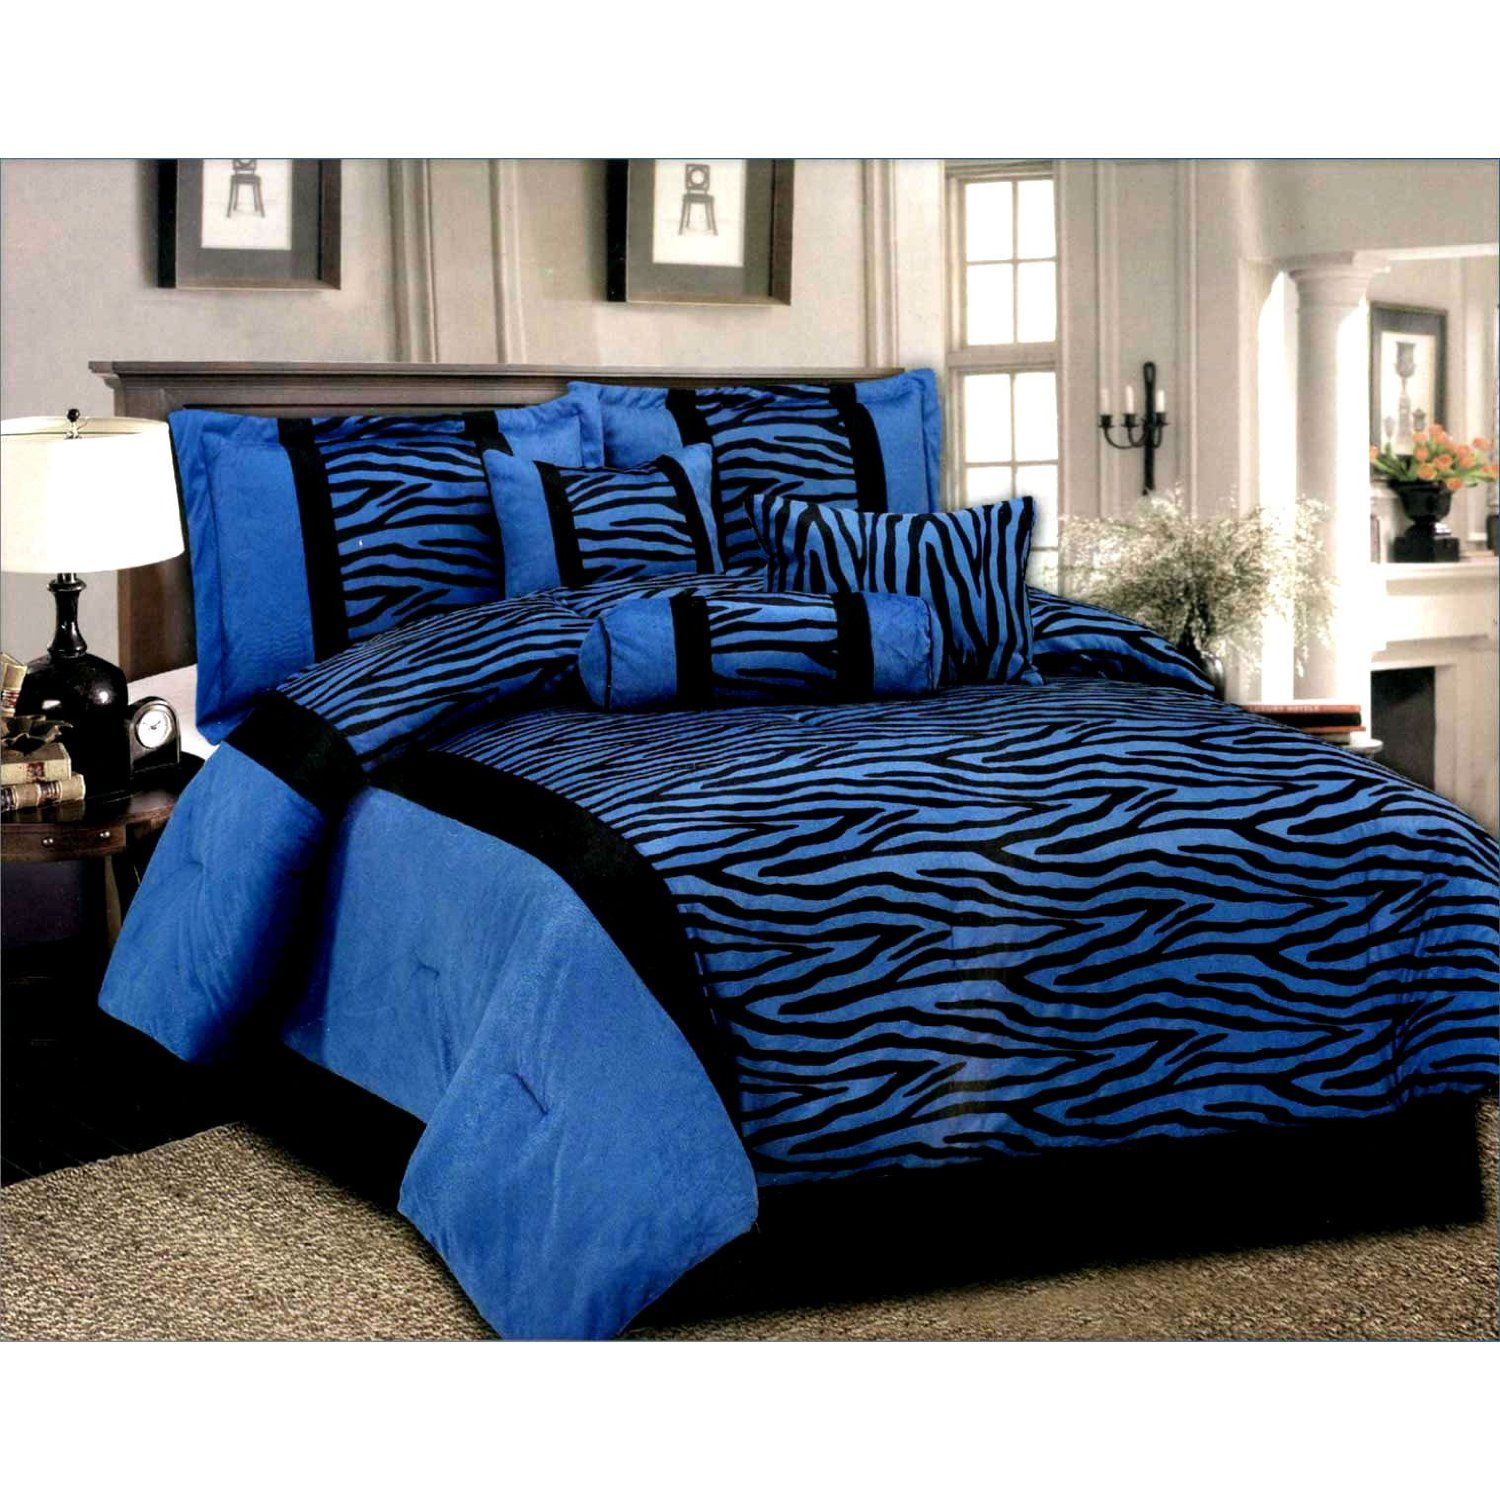 Blue zebra print bedding bedroom decorating ideas and - Created By Bedroom Decor Ideas Blue Zebra Is Very Popular With Tween Teens And Adults Blue Zebra Bedding Is A Gorgeous Color Combination For Any Bedroom